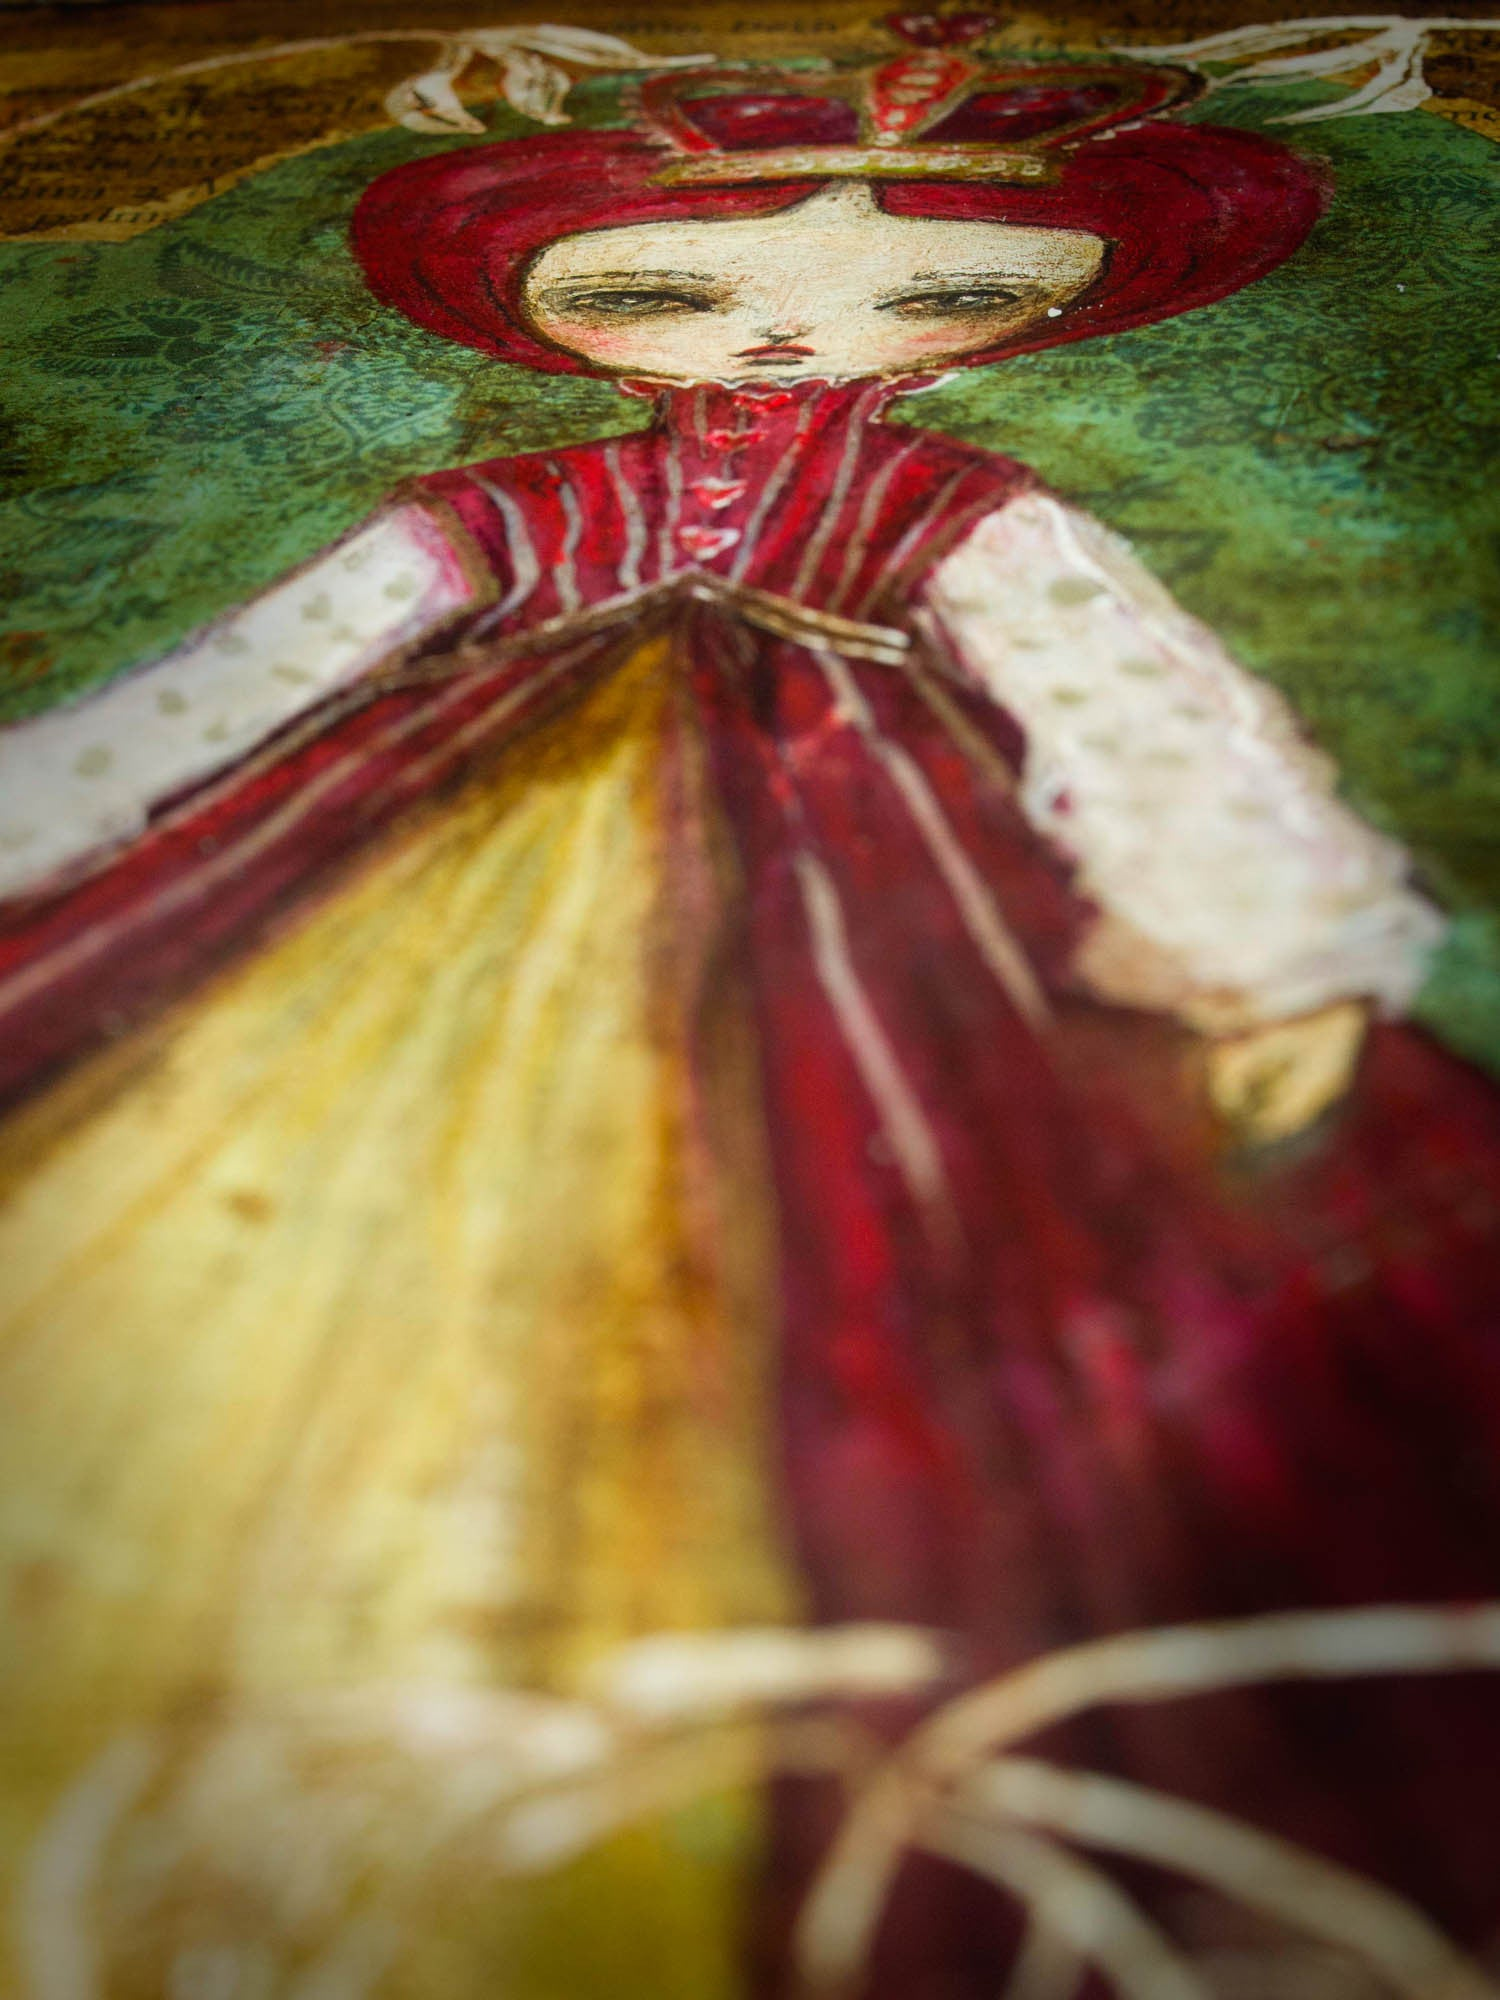 The red queen is the ruler of Wonderland, and Danita captured her royalty while she is surrounded by her favorite roses in white ink, while she looks for someone to off their heads, because they should have been painted red.